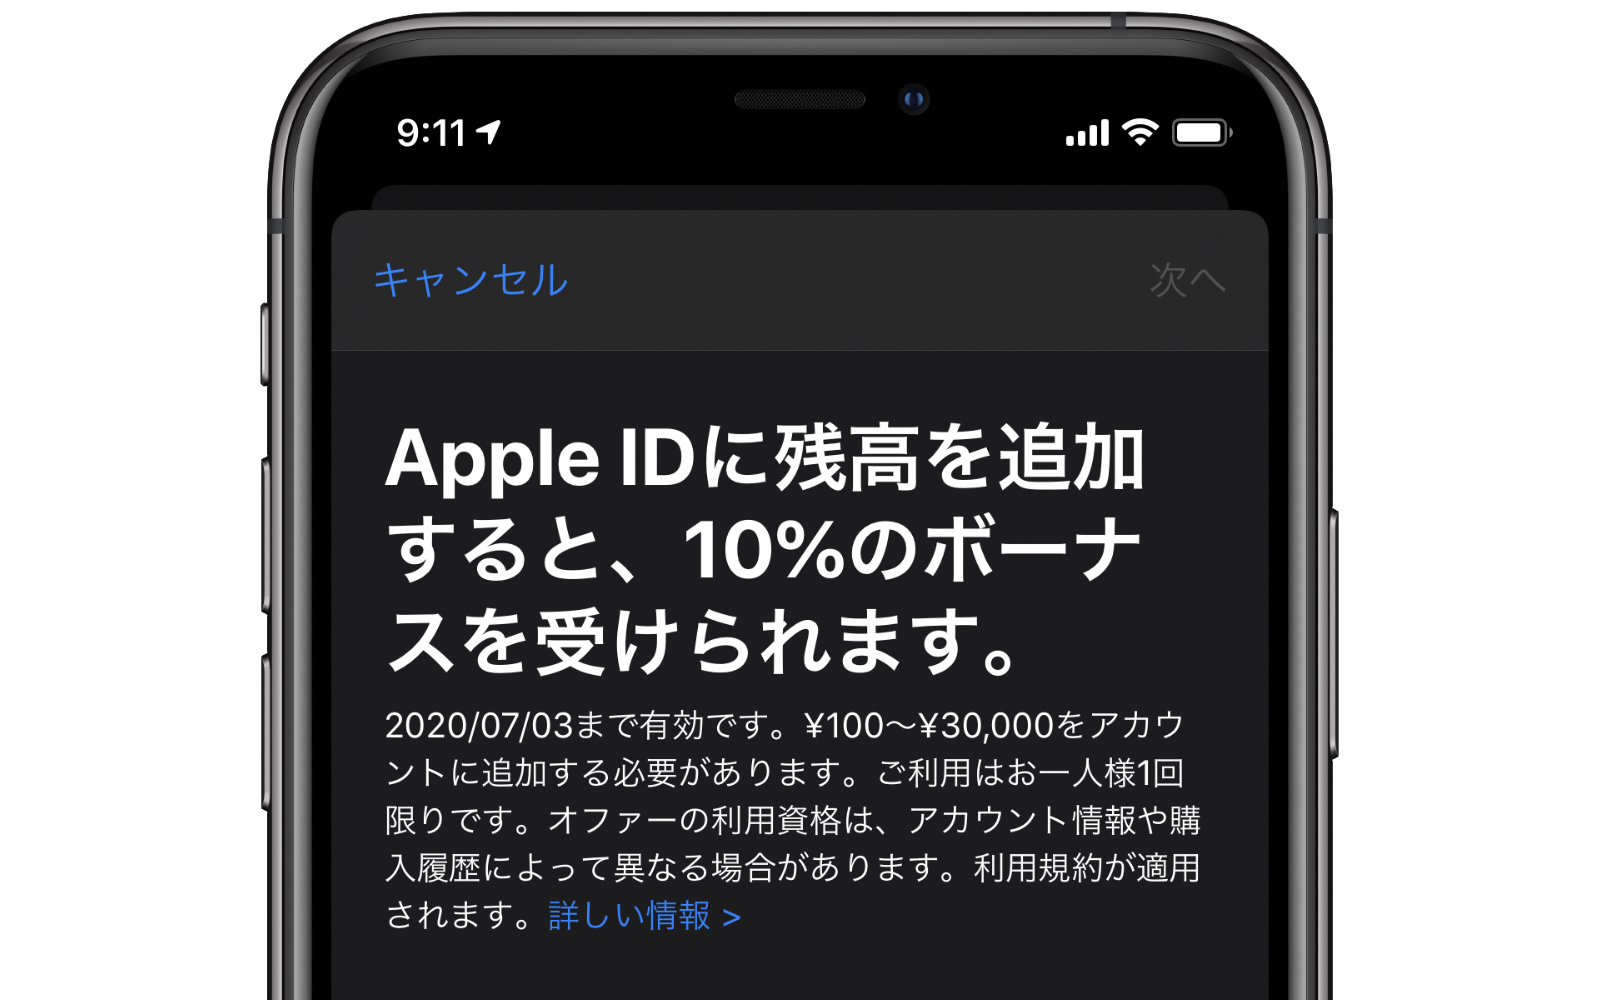 Apple ID Cashback Campaign